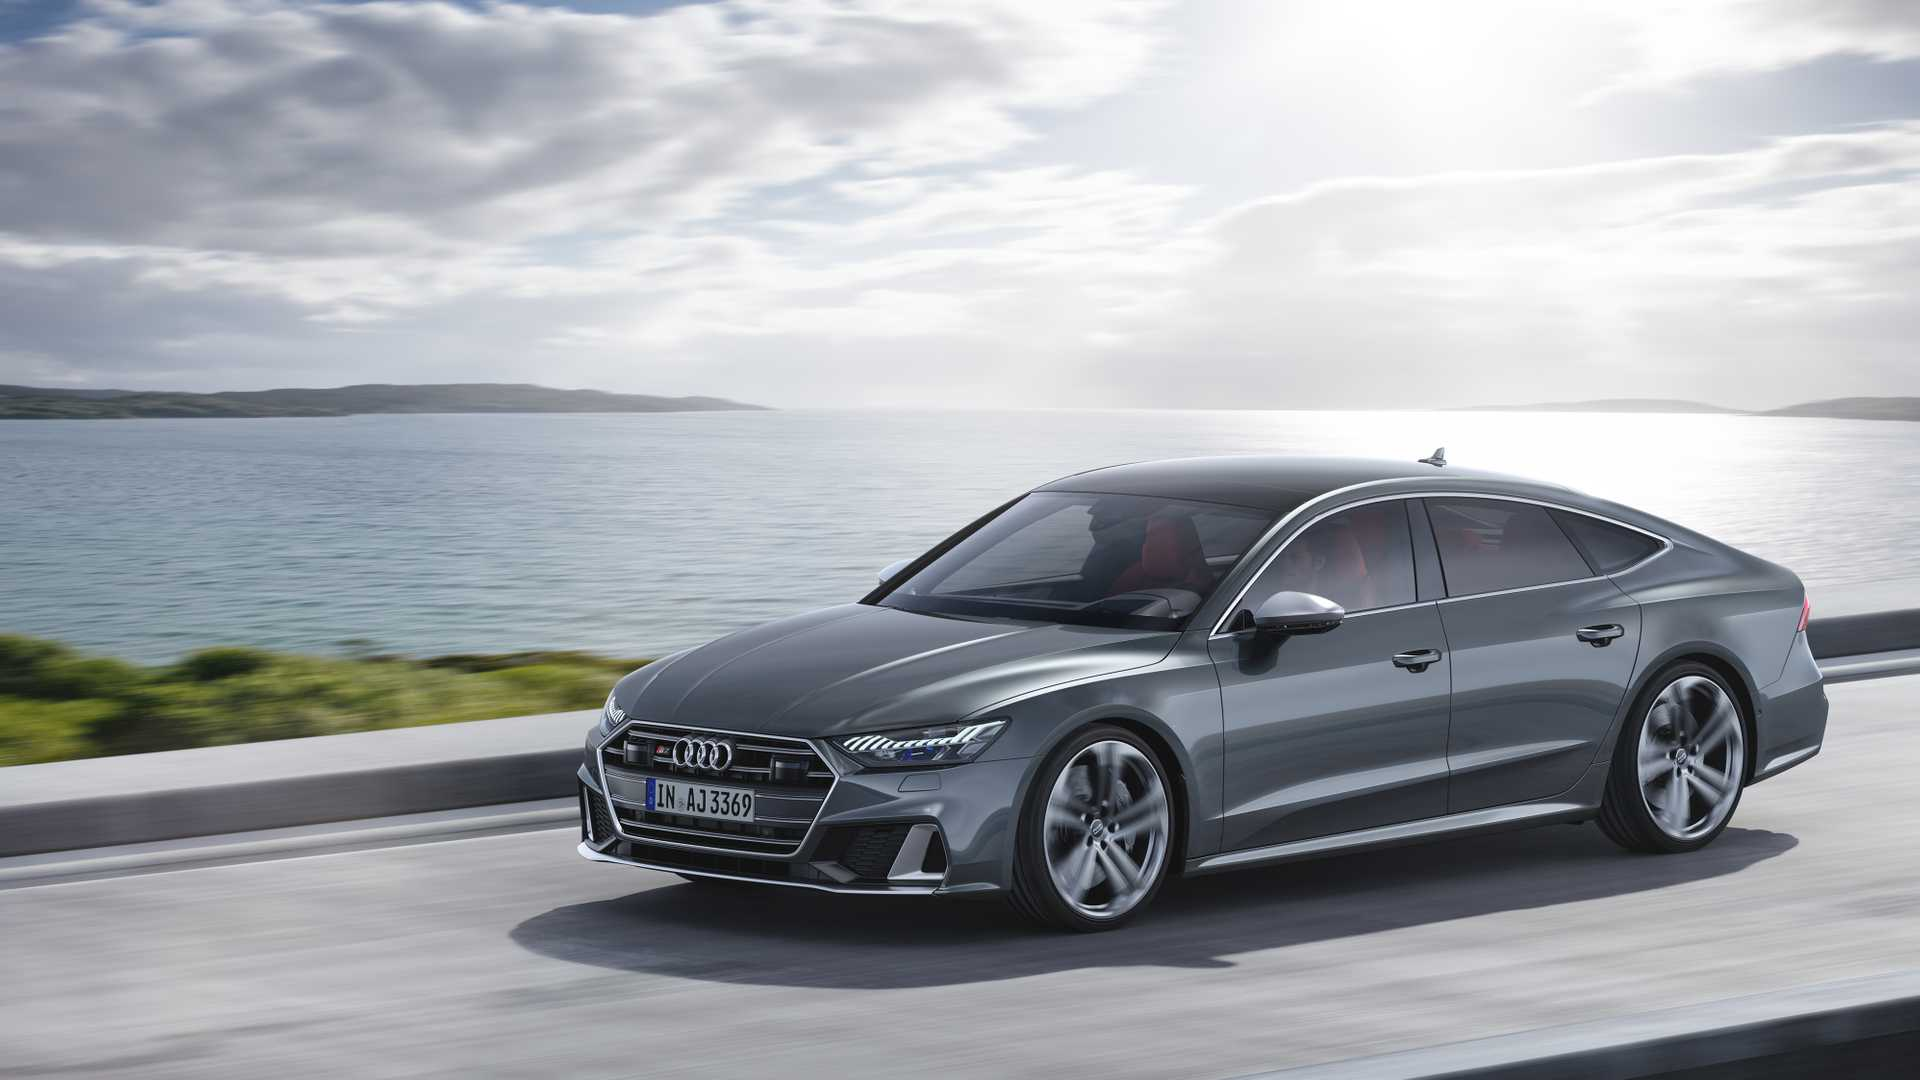 2019 Audi S7 Sportback TDI (Color: Daytona Grey) Front Three-Quarter Wallpapers (4)